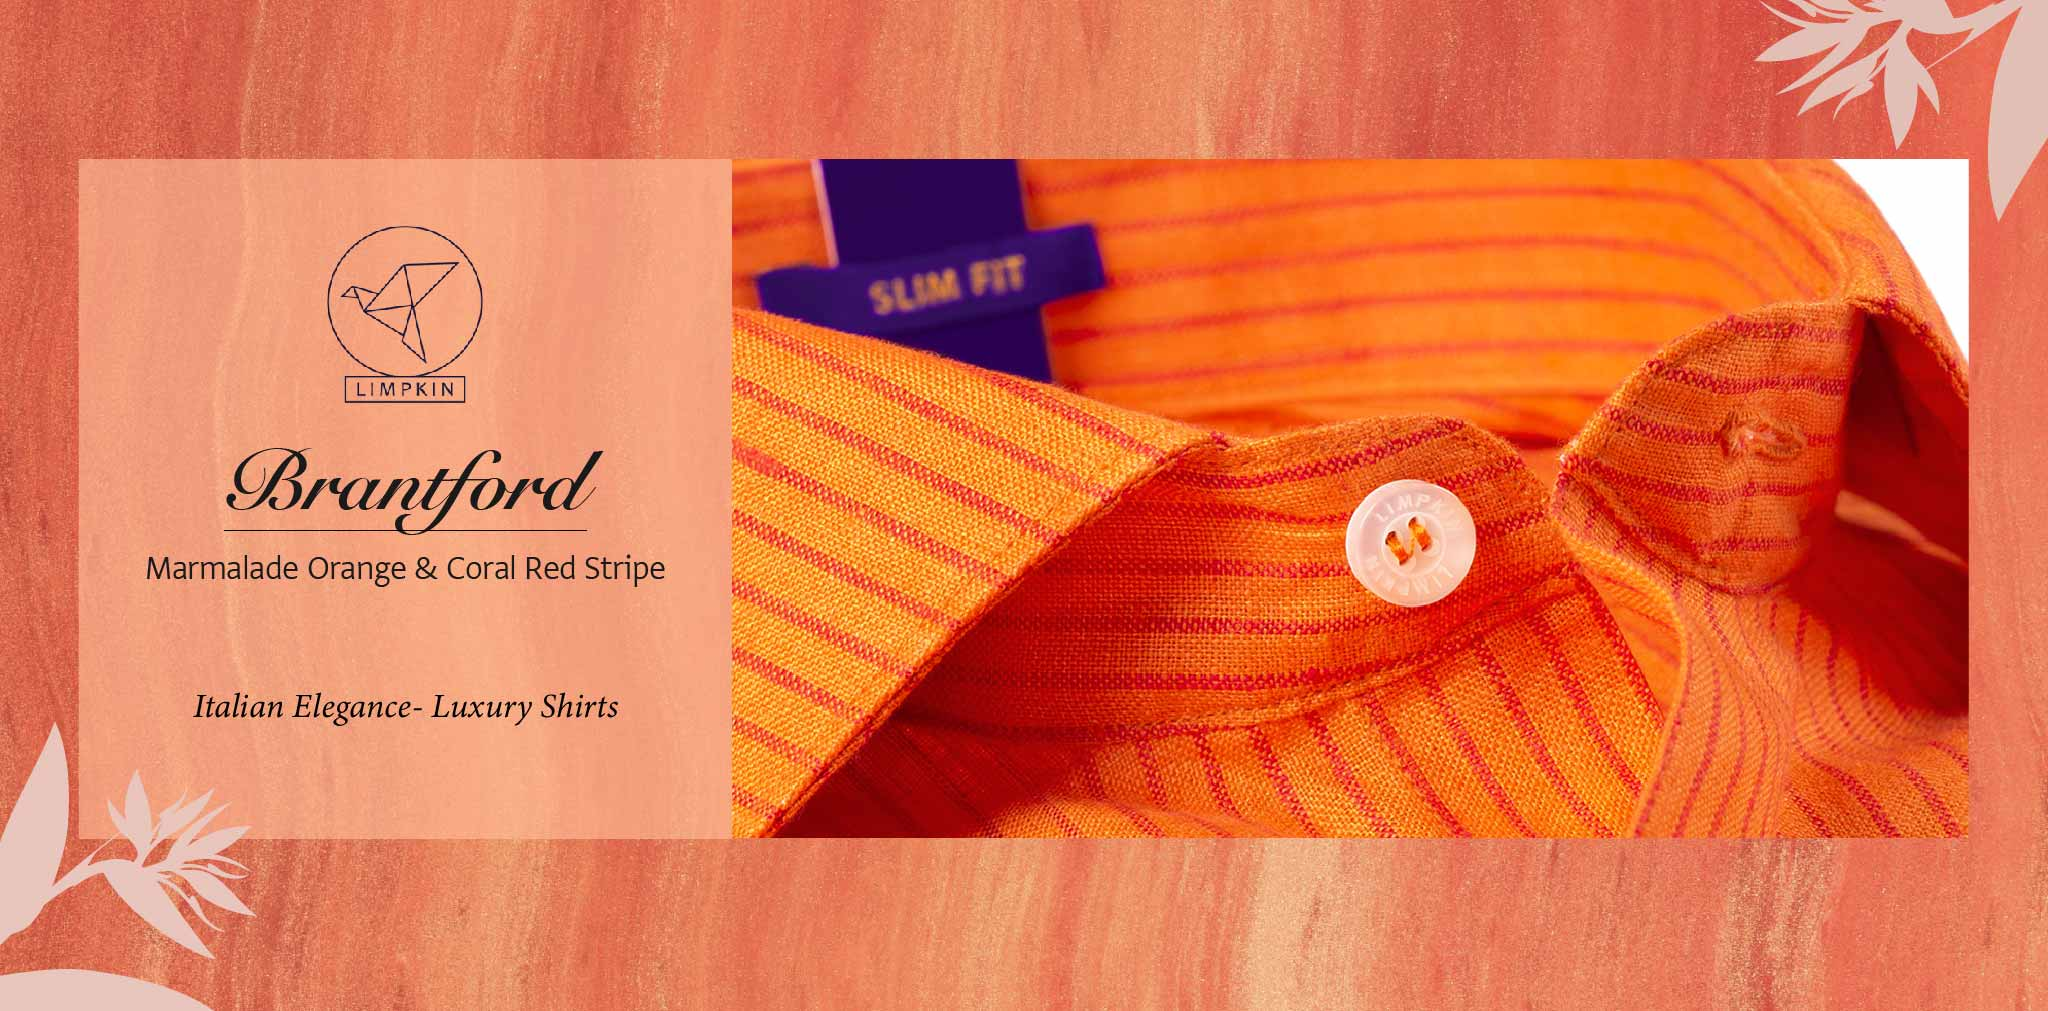 Brantford- Marmalade Orange & Coral Red Stripe- 66's Lea Pure Luxury Linen- Delivery from 16th Jan - Banner